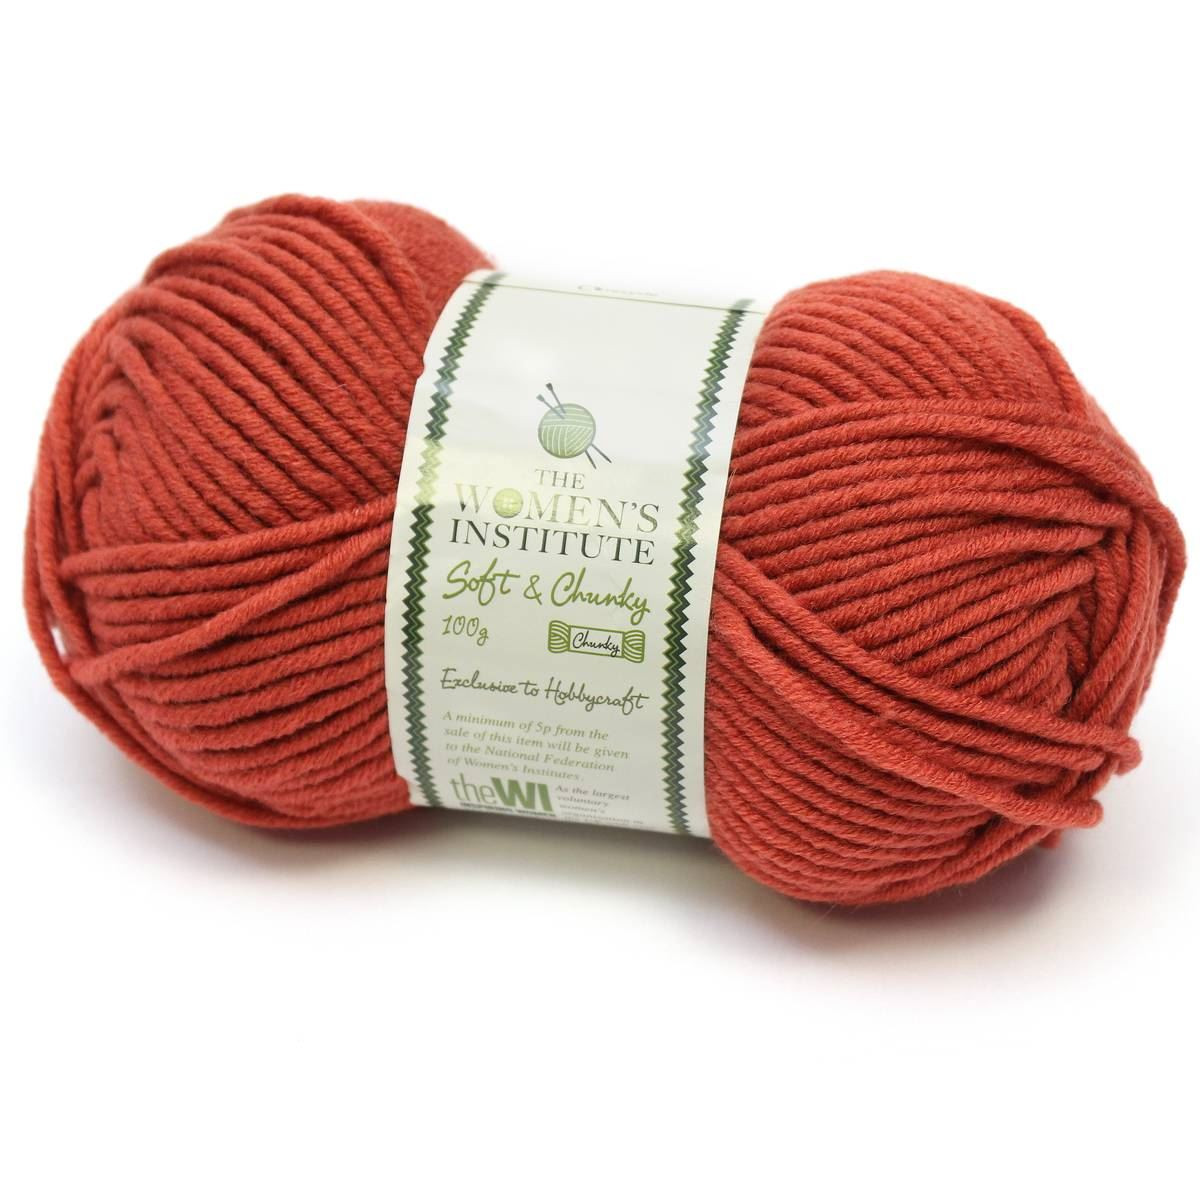 Softest Yarn for Crochet Awesome Womens Institute soft Chunky Yarn Different Colour Acrylic Of Charming 43 Images softest Yarn for Crochet